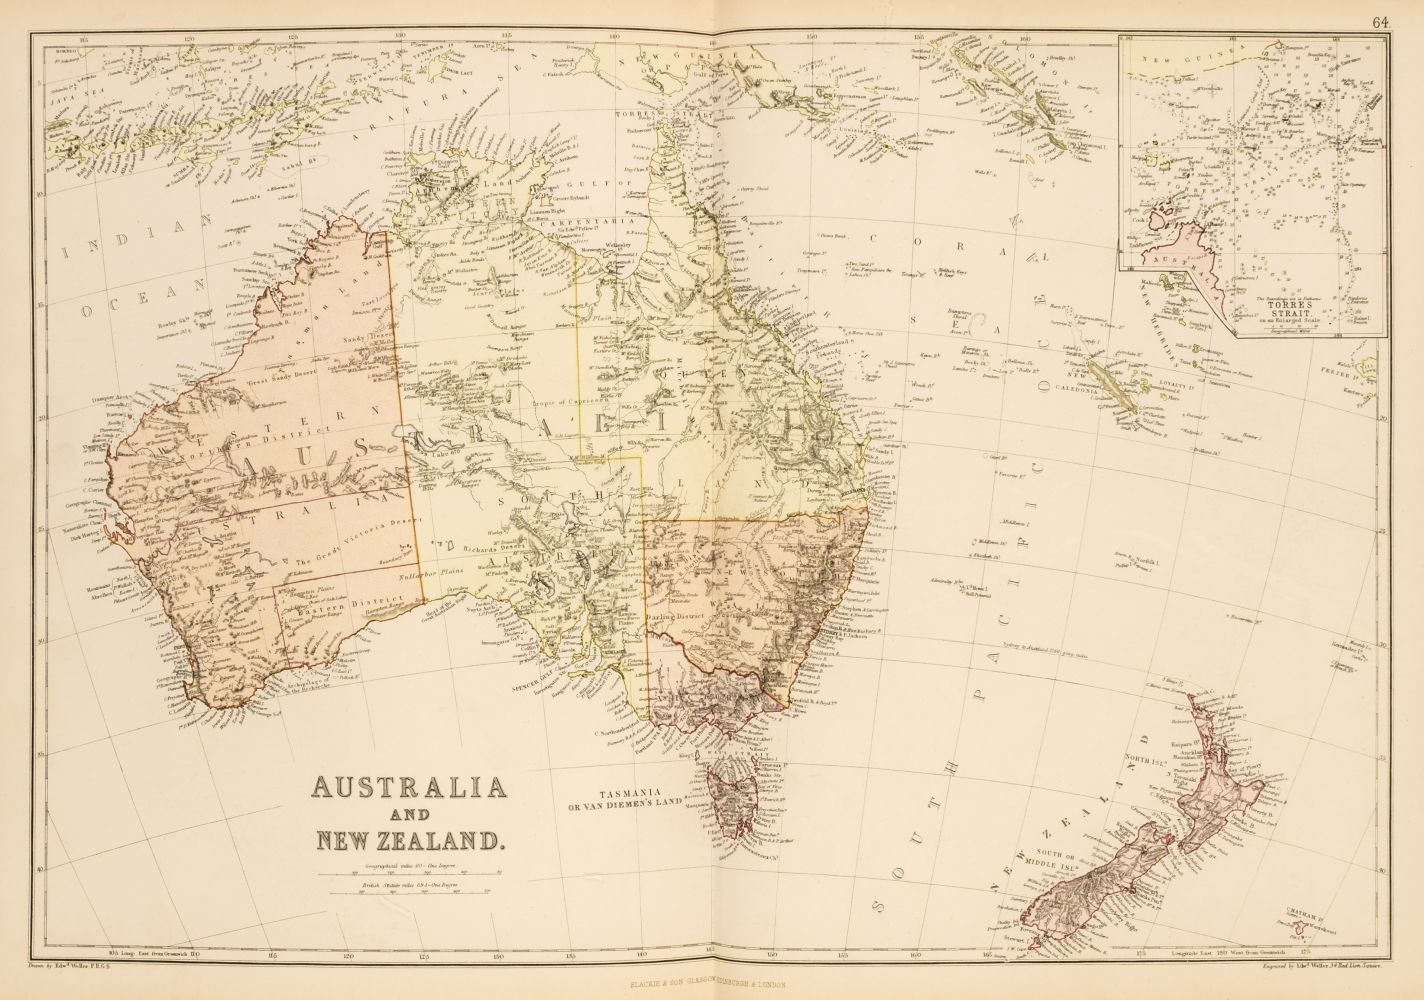 Blackie & Son (publishers). The Comprehensive Atlas & Geography of the World, 1882